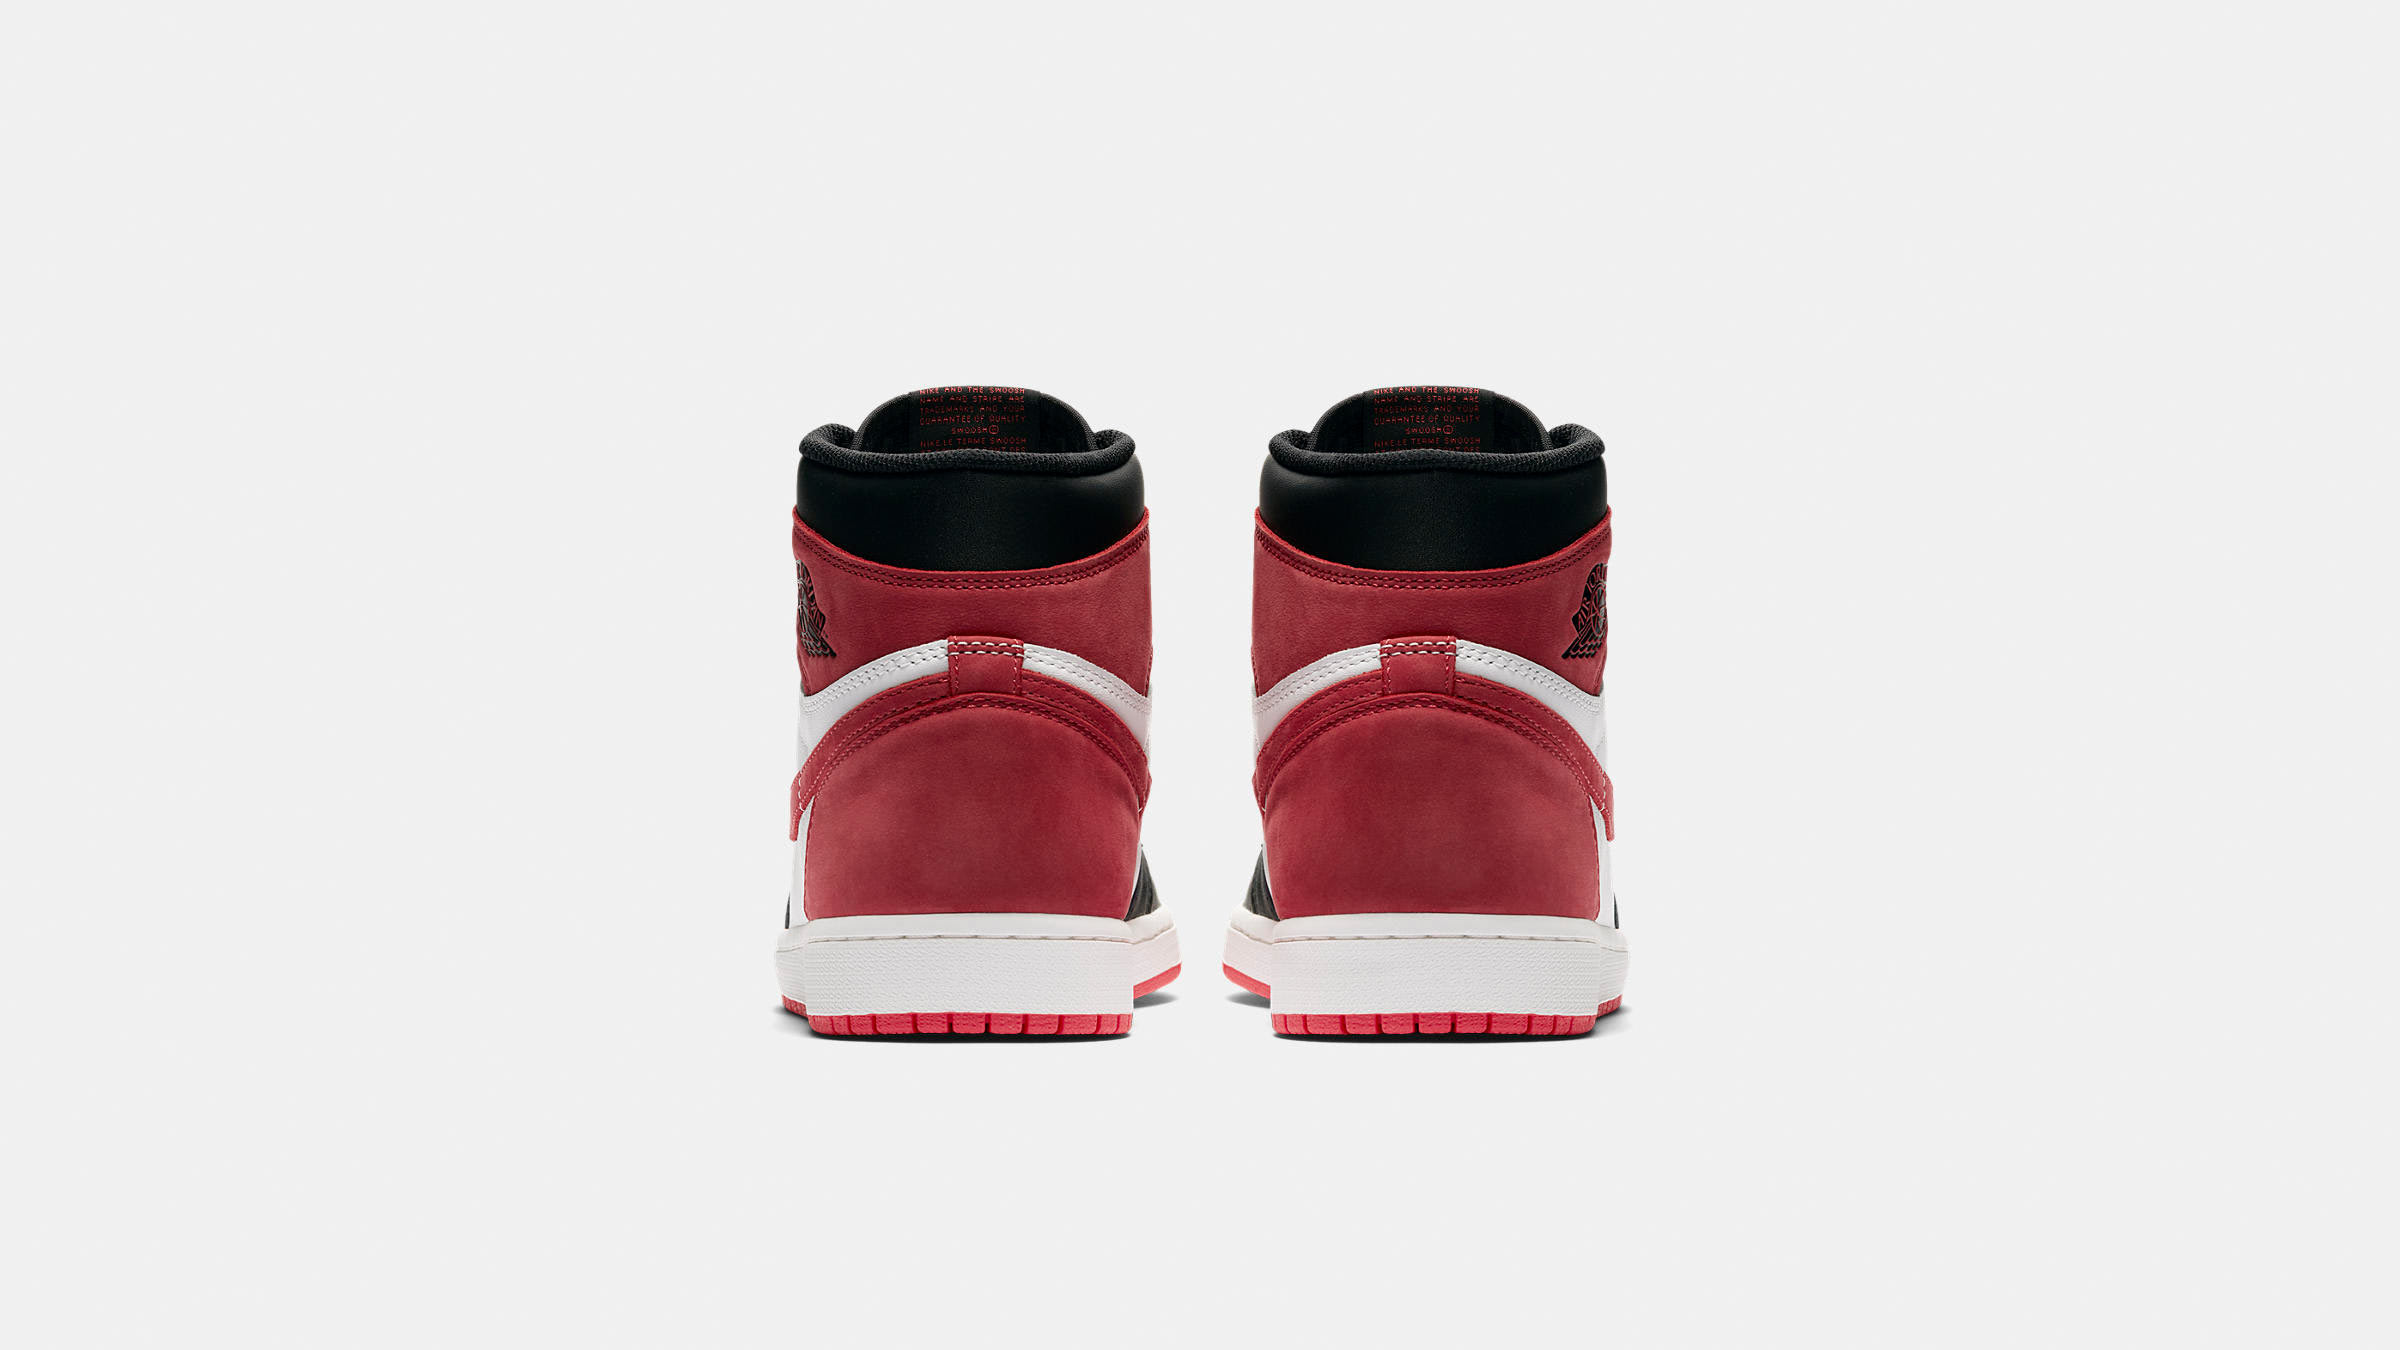 """8061a507b738 Leather Uppers  """"Track Red"""" Suede  Championship Win Printed Insole   Perforations  Encapsulated Air Unit  Rubber Cupsole  Style Code  555088-112"""